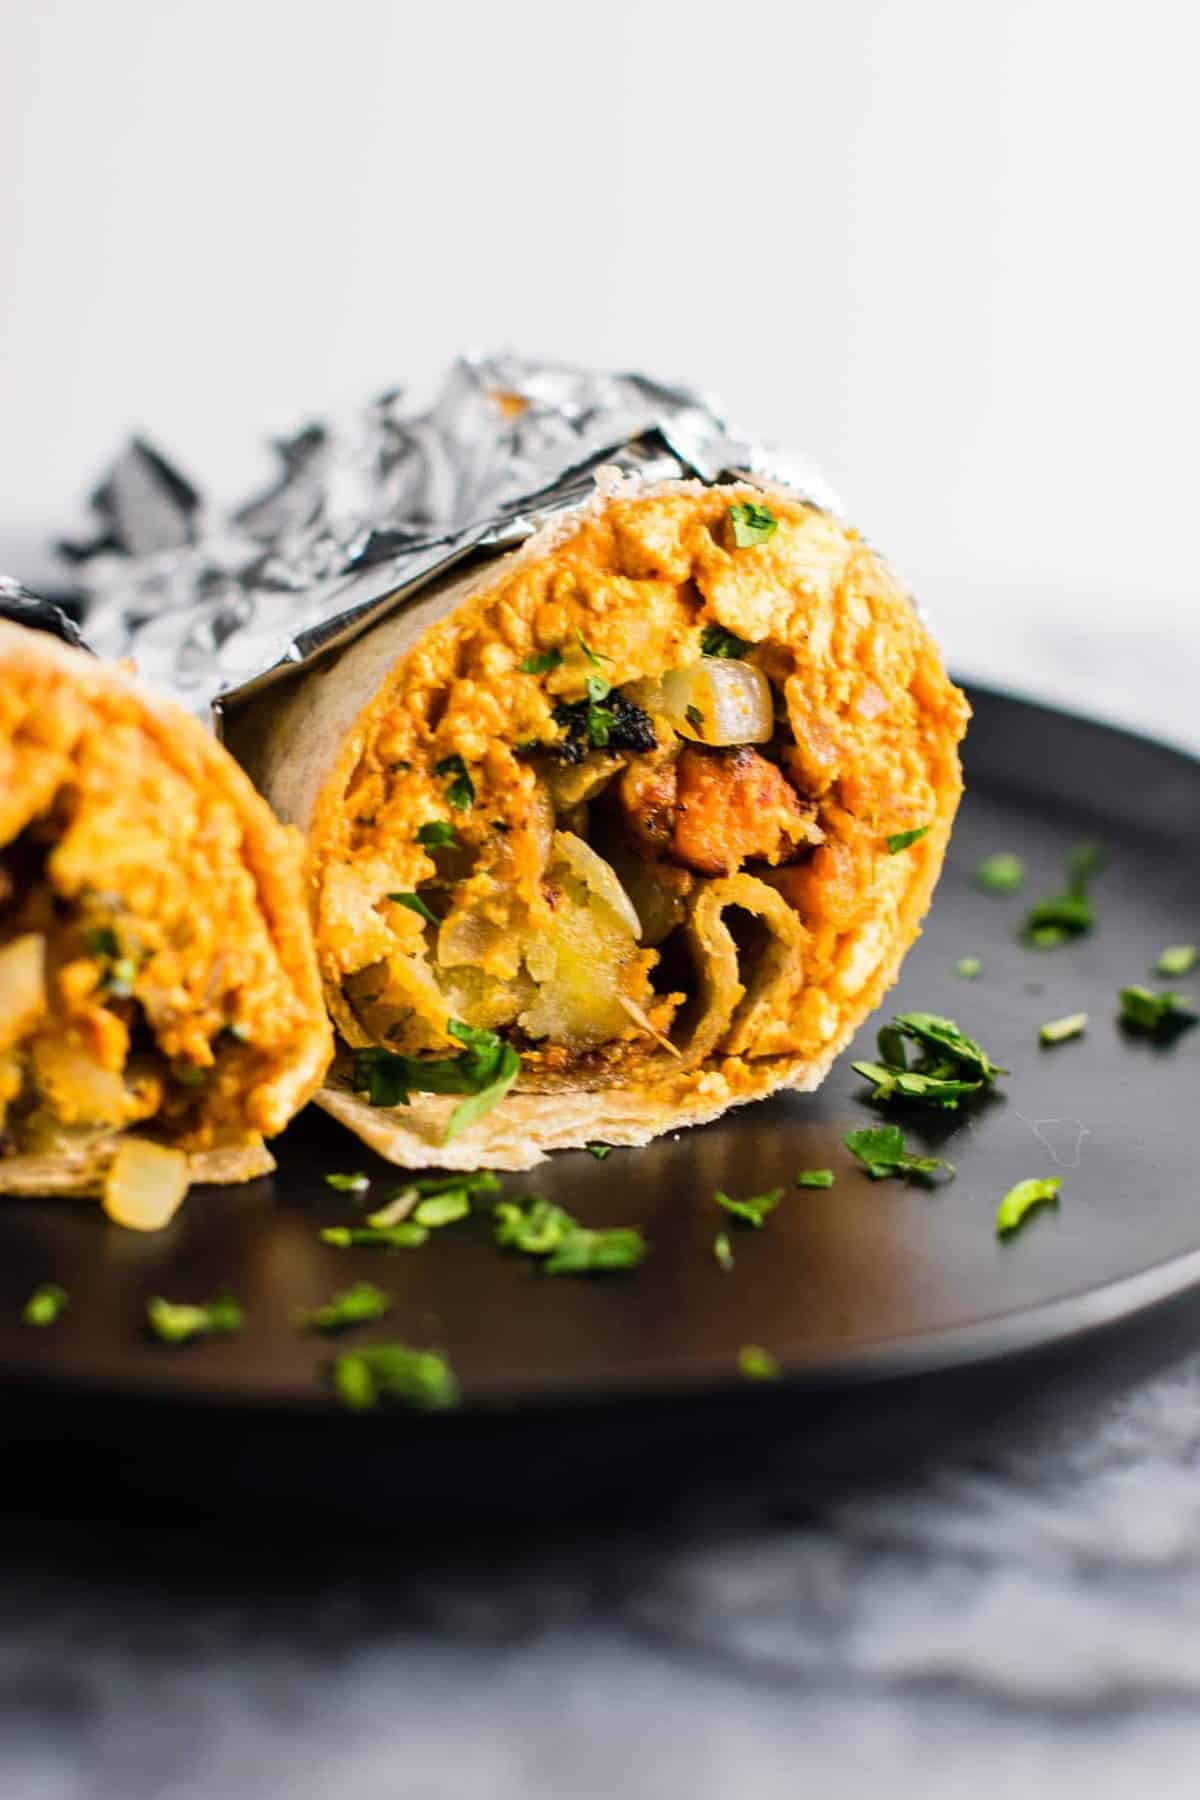 The BEST vegan breakfast burrito recipe you'll ever try! Made with scrambled tofu and crispy vegan breakfast hash. #veganbreakfastburrito #veganbreakfast #vegan #breakfastburrito